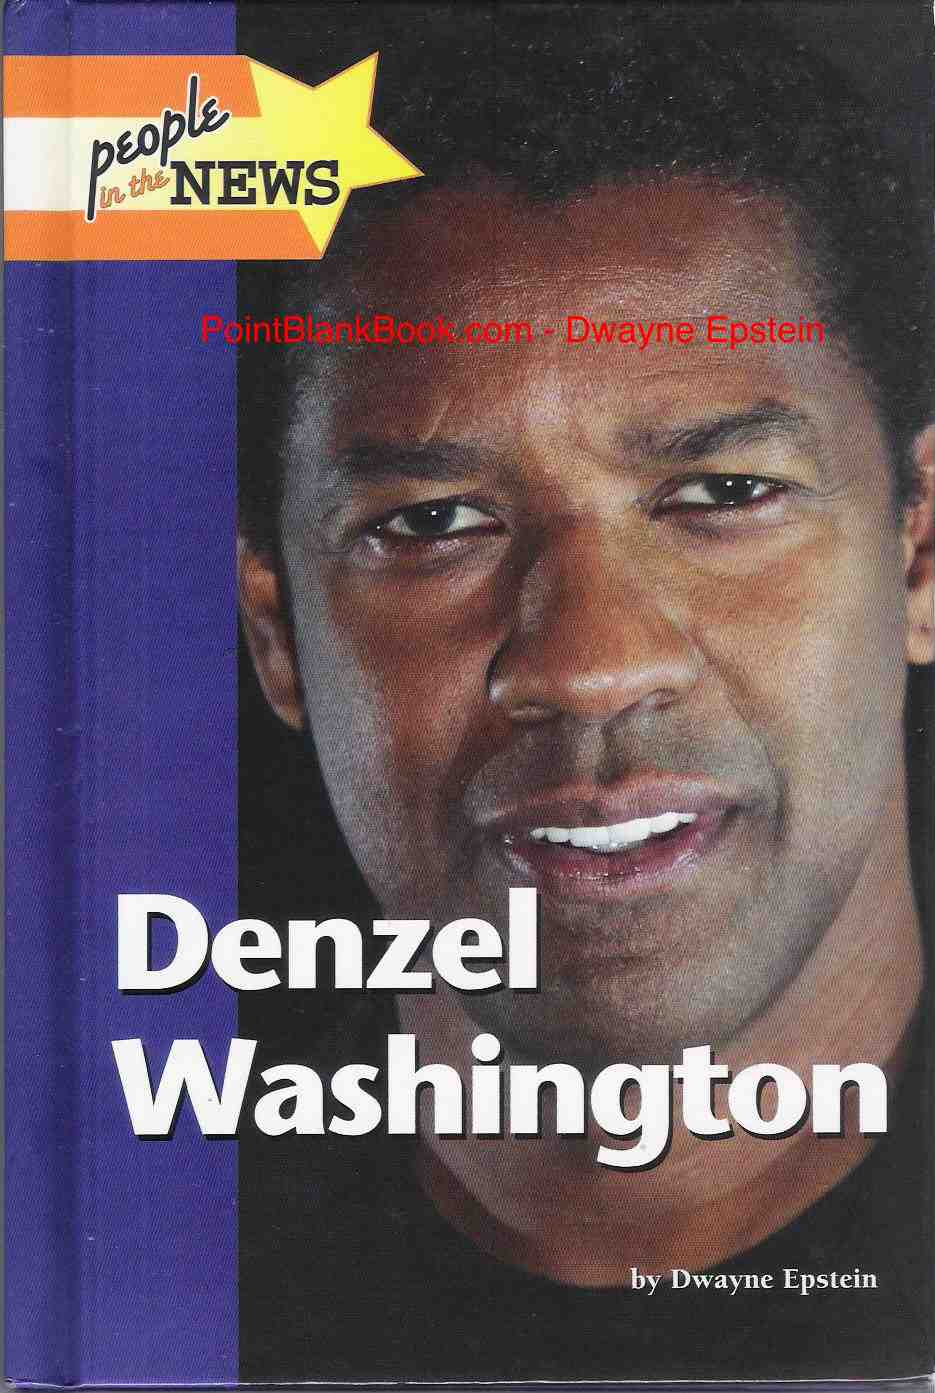 The cover of my 2010 People in the News young adult biography on Denzel Washington.